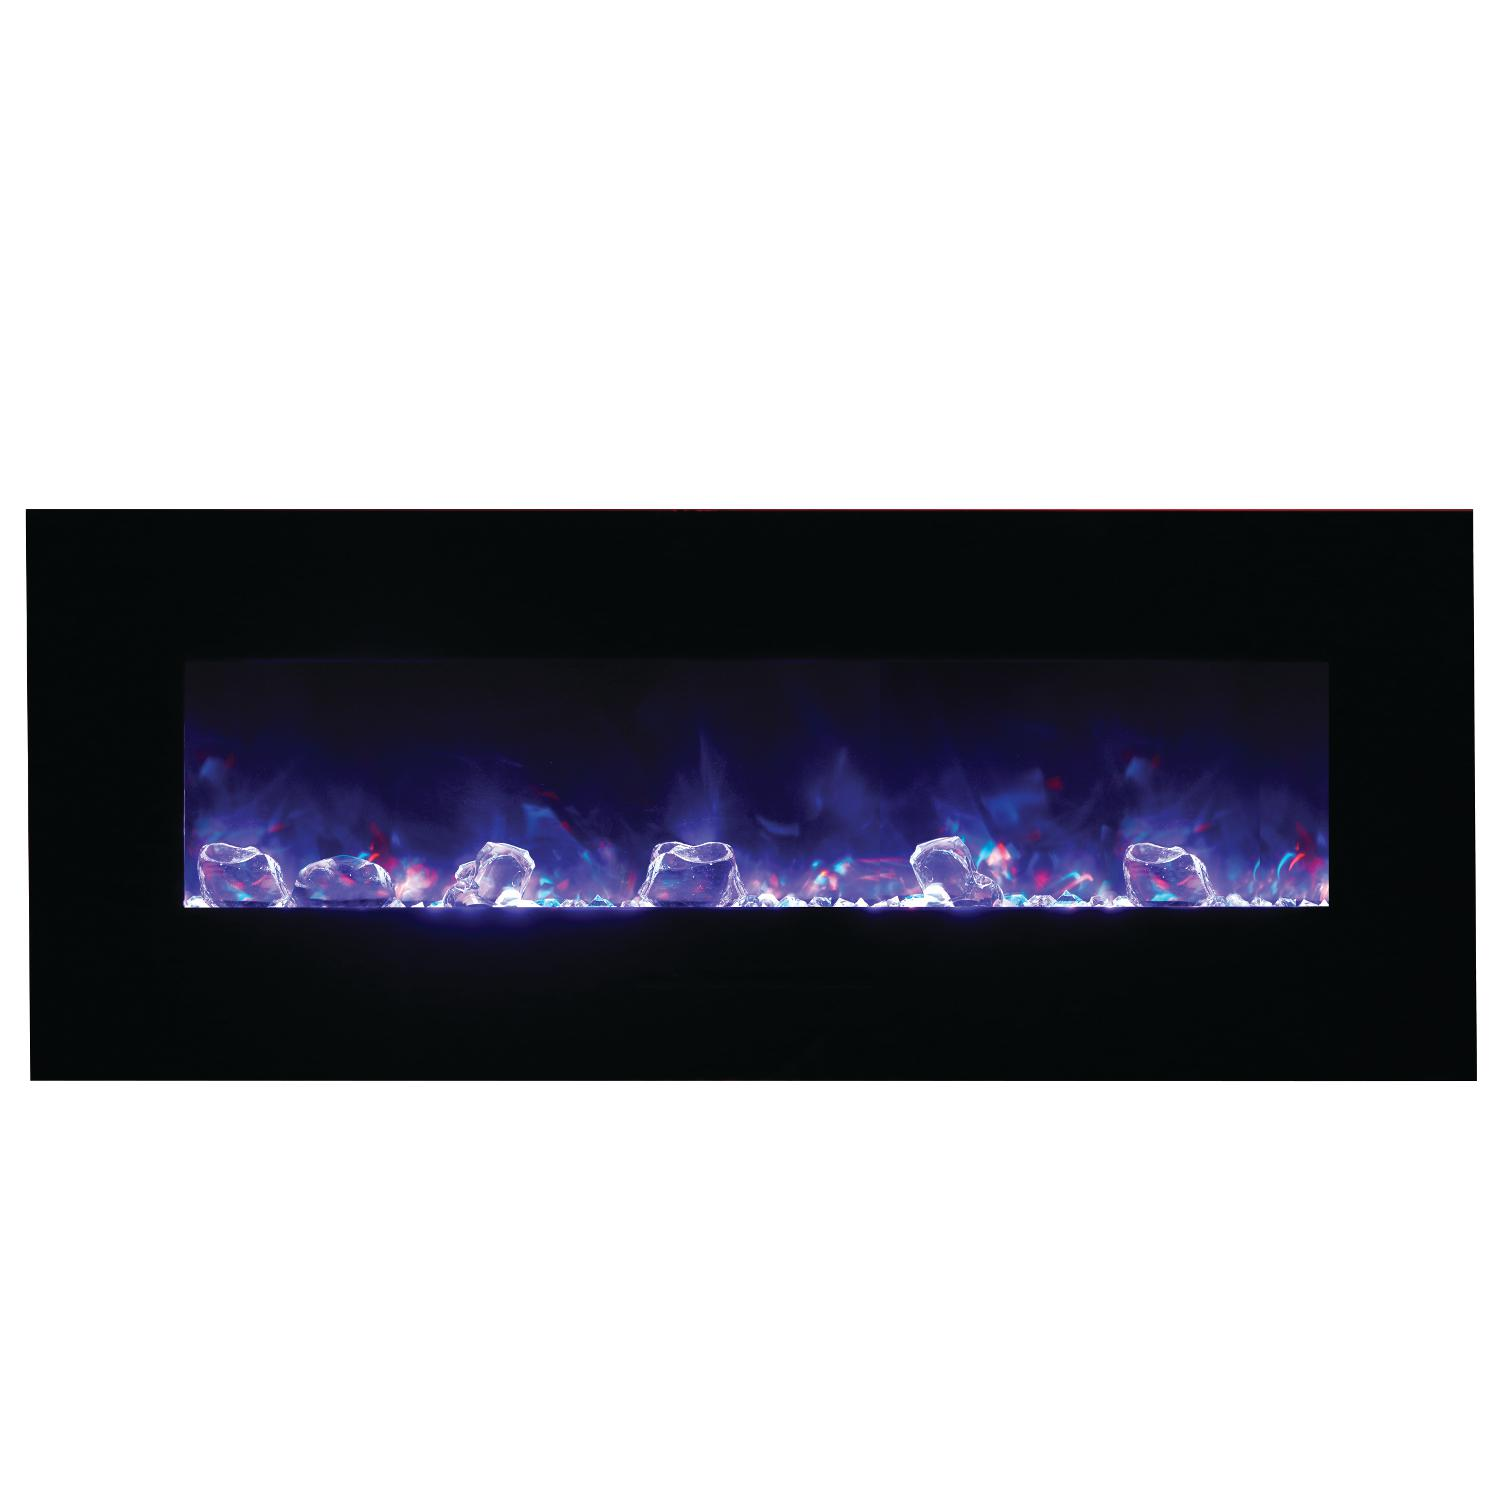 "Amantii Wall Mount/flush Mount 48"" Electric Fireplace With Black Glass Surround - Wm-fm-48-5823-bg"